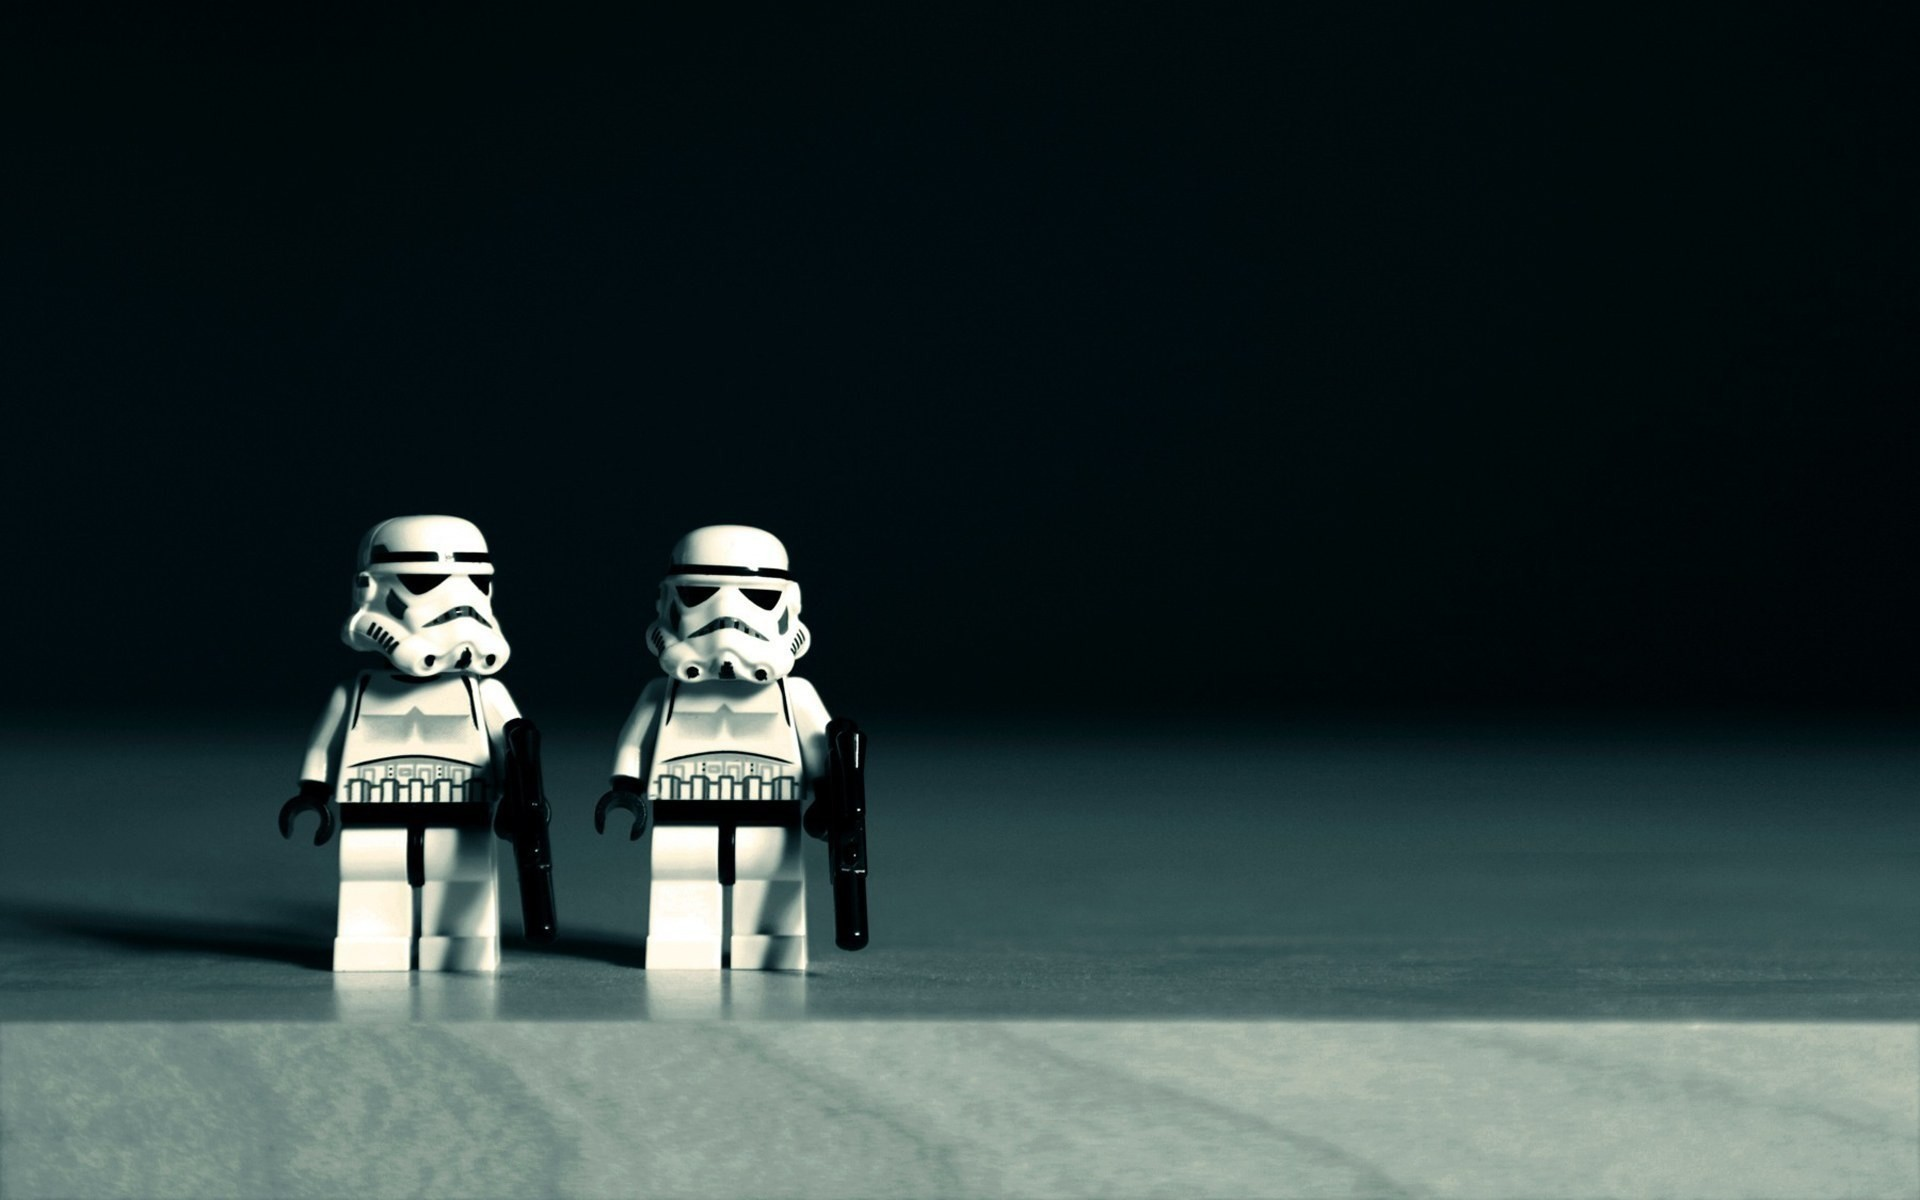 1920x1200 Image - Star-wars-stormtroopers-toys-macro-lego-hd-wallpaper.jpg | Lego  Star Wars Wiki | FANDOM powered by Wikia